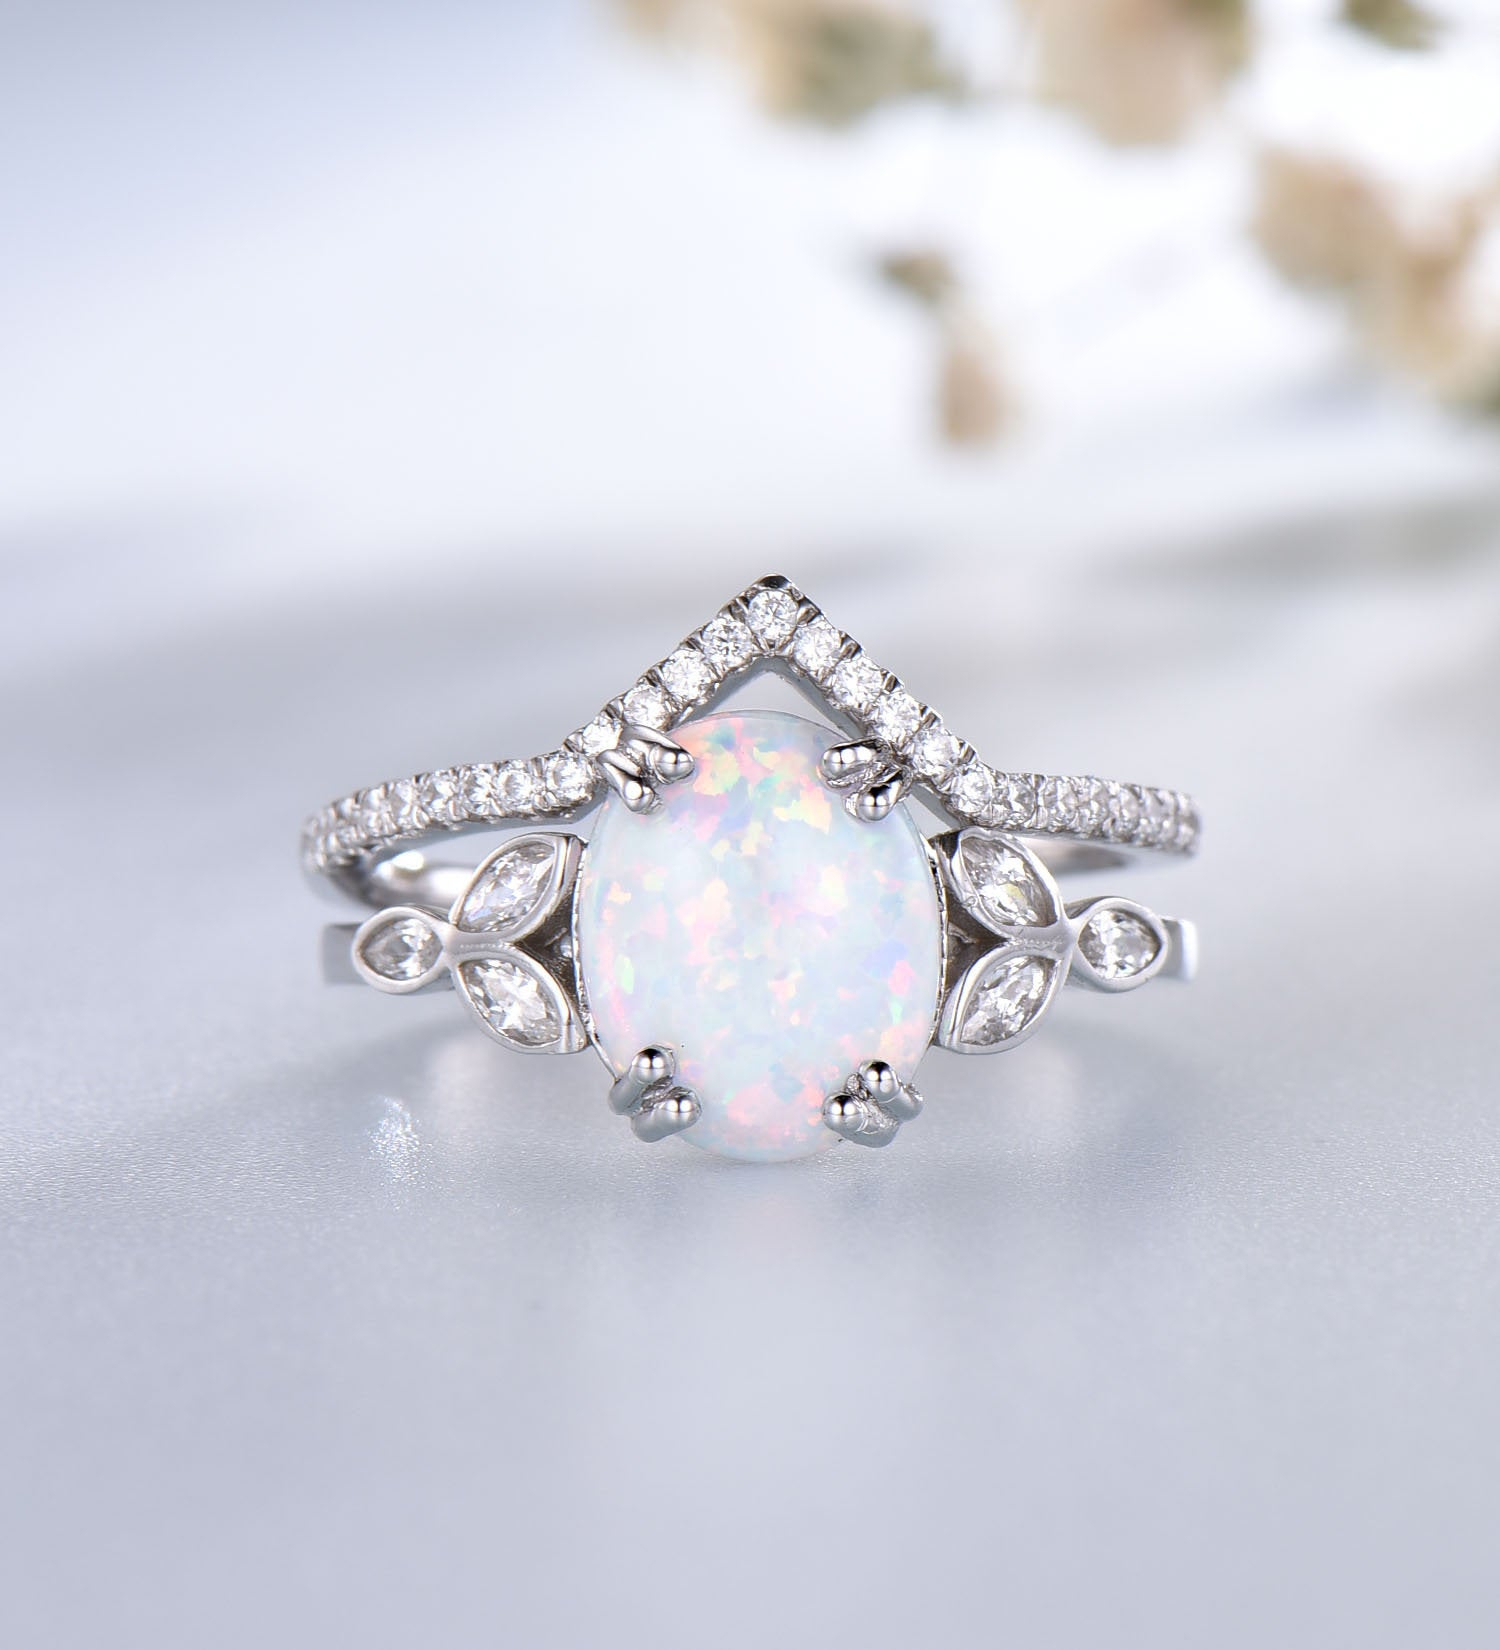 Opal Engagement Ring Sterling Silver Vintage Style Wedding Set Cz Diamond  Wedding Band October Birthstone Jewelry 14K Gold Rings Within Most Popular Diamond Vintage Style Anniversary Bands In Sterling Silver (View 14 of 25)